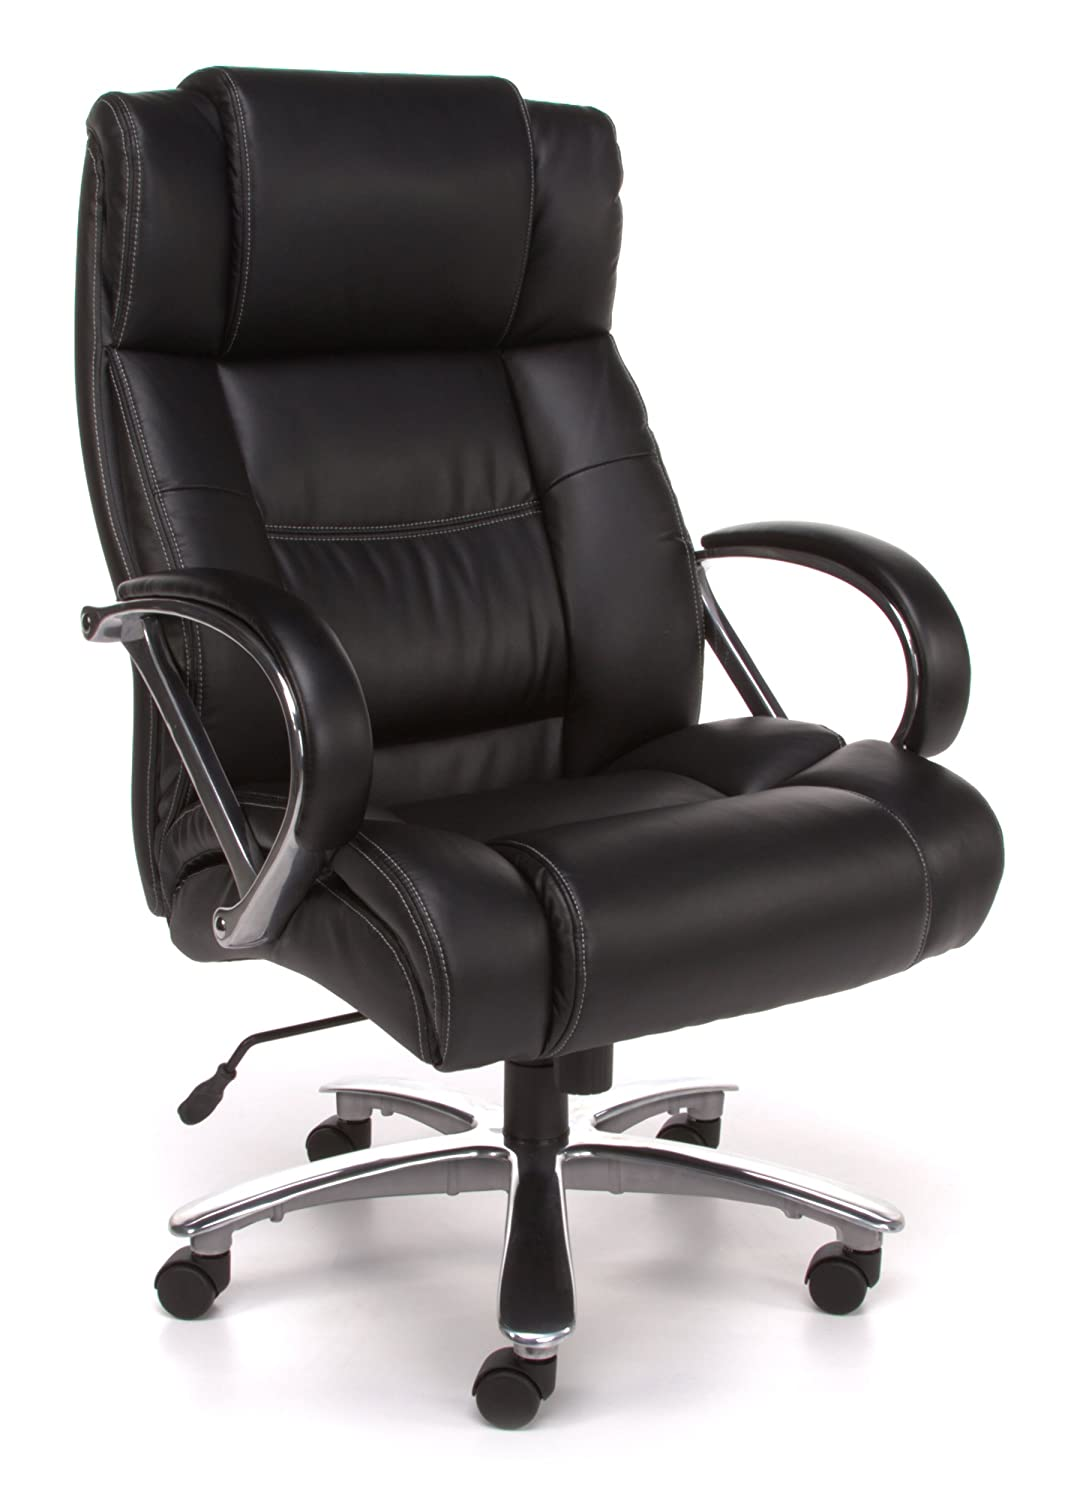 big and tall desk chairs best massage what are the office chair with 500 lbs